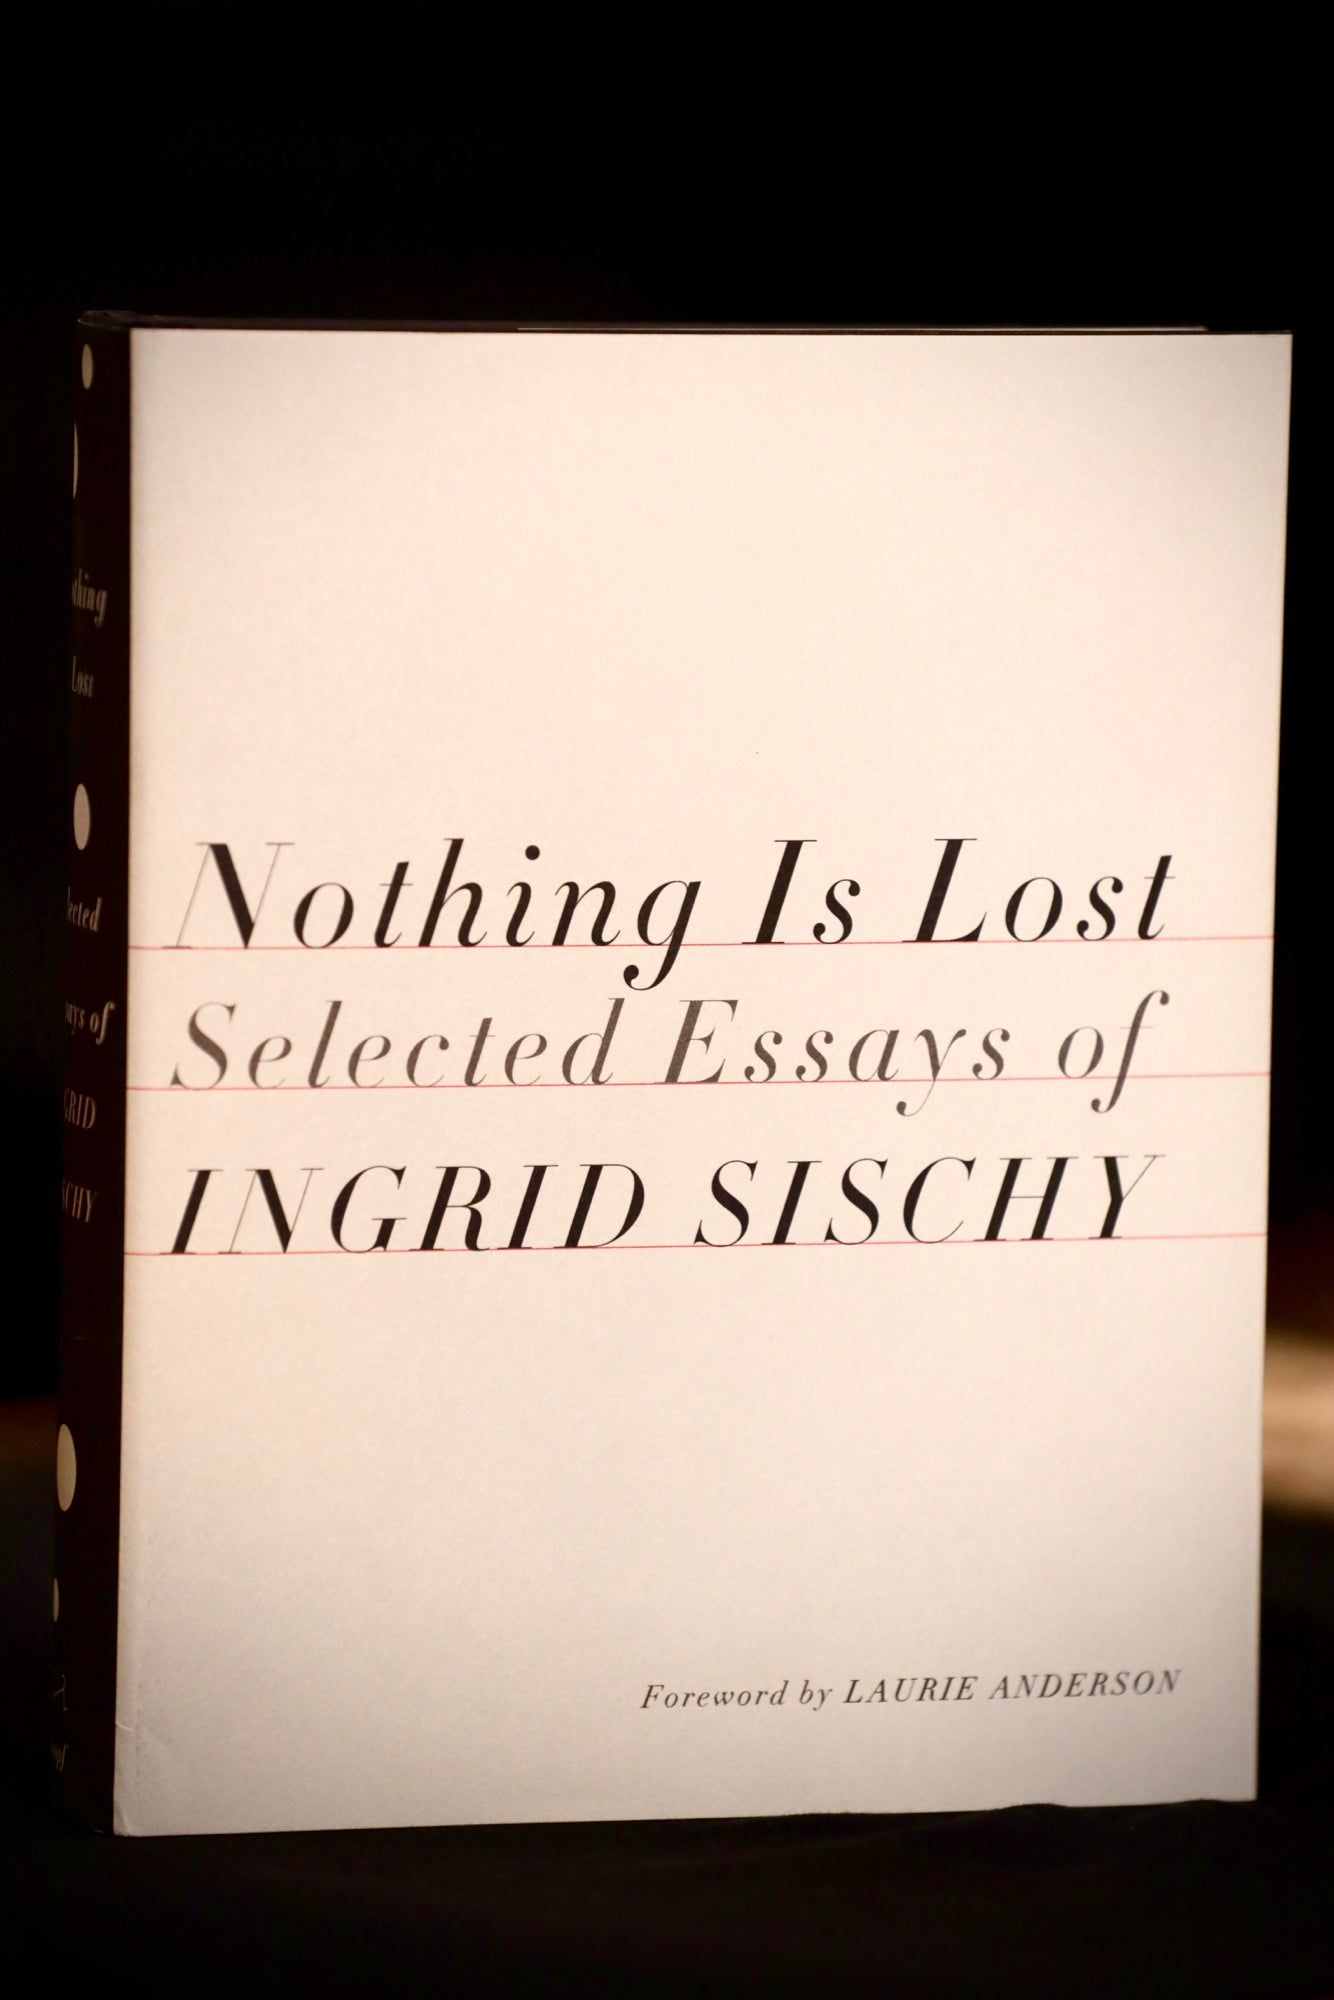 Nothing is Lost: Selected Essays of Ingrid Sischy